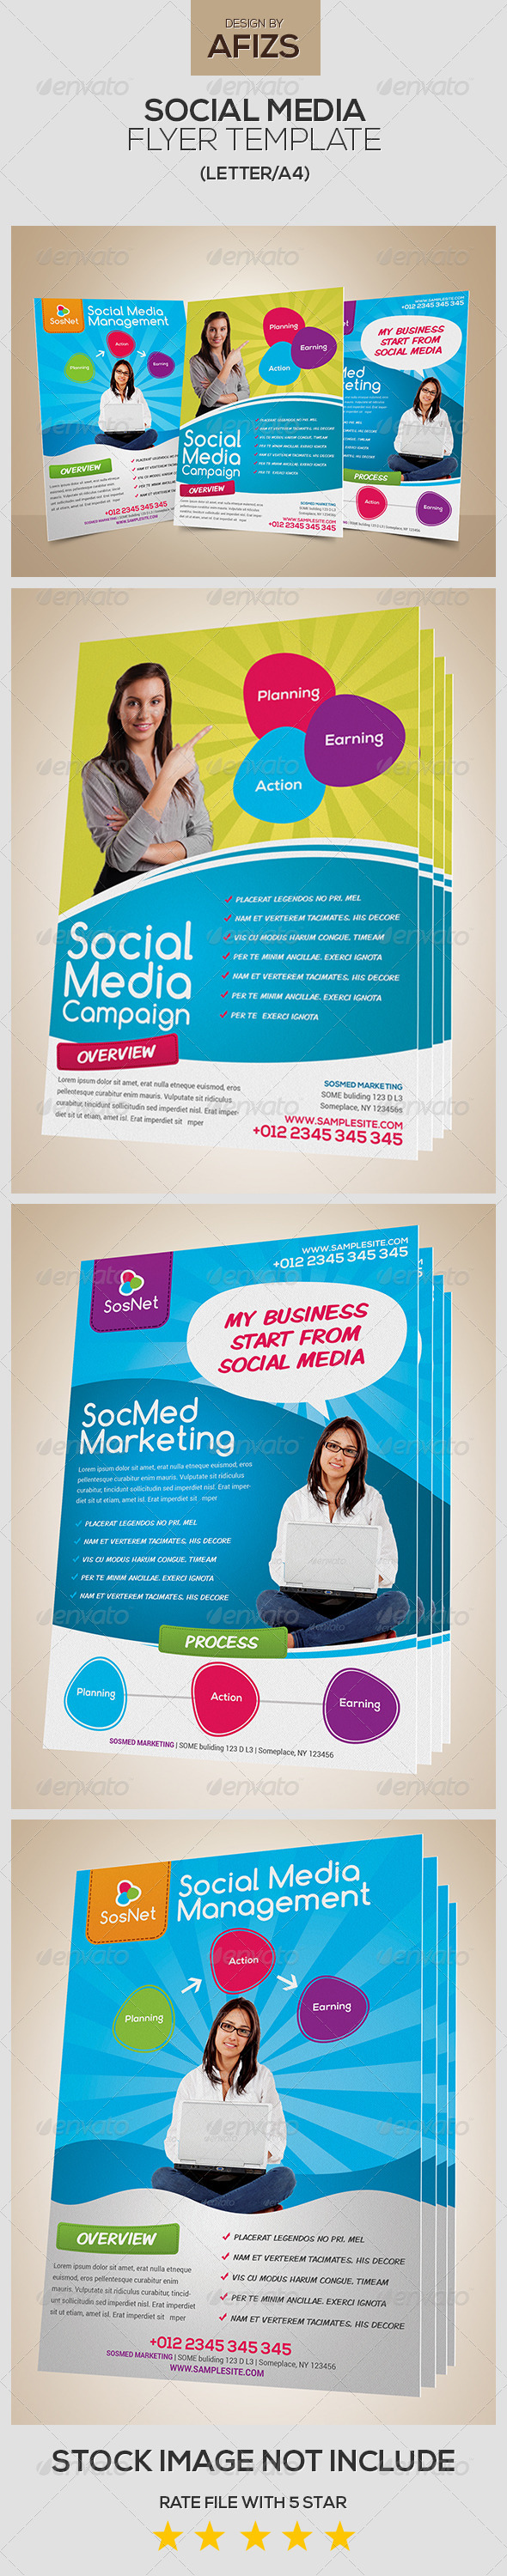 GraphicRiver Social Media Marketing Flyer 5569216